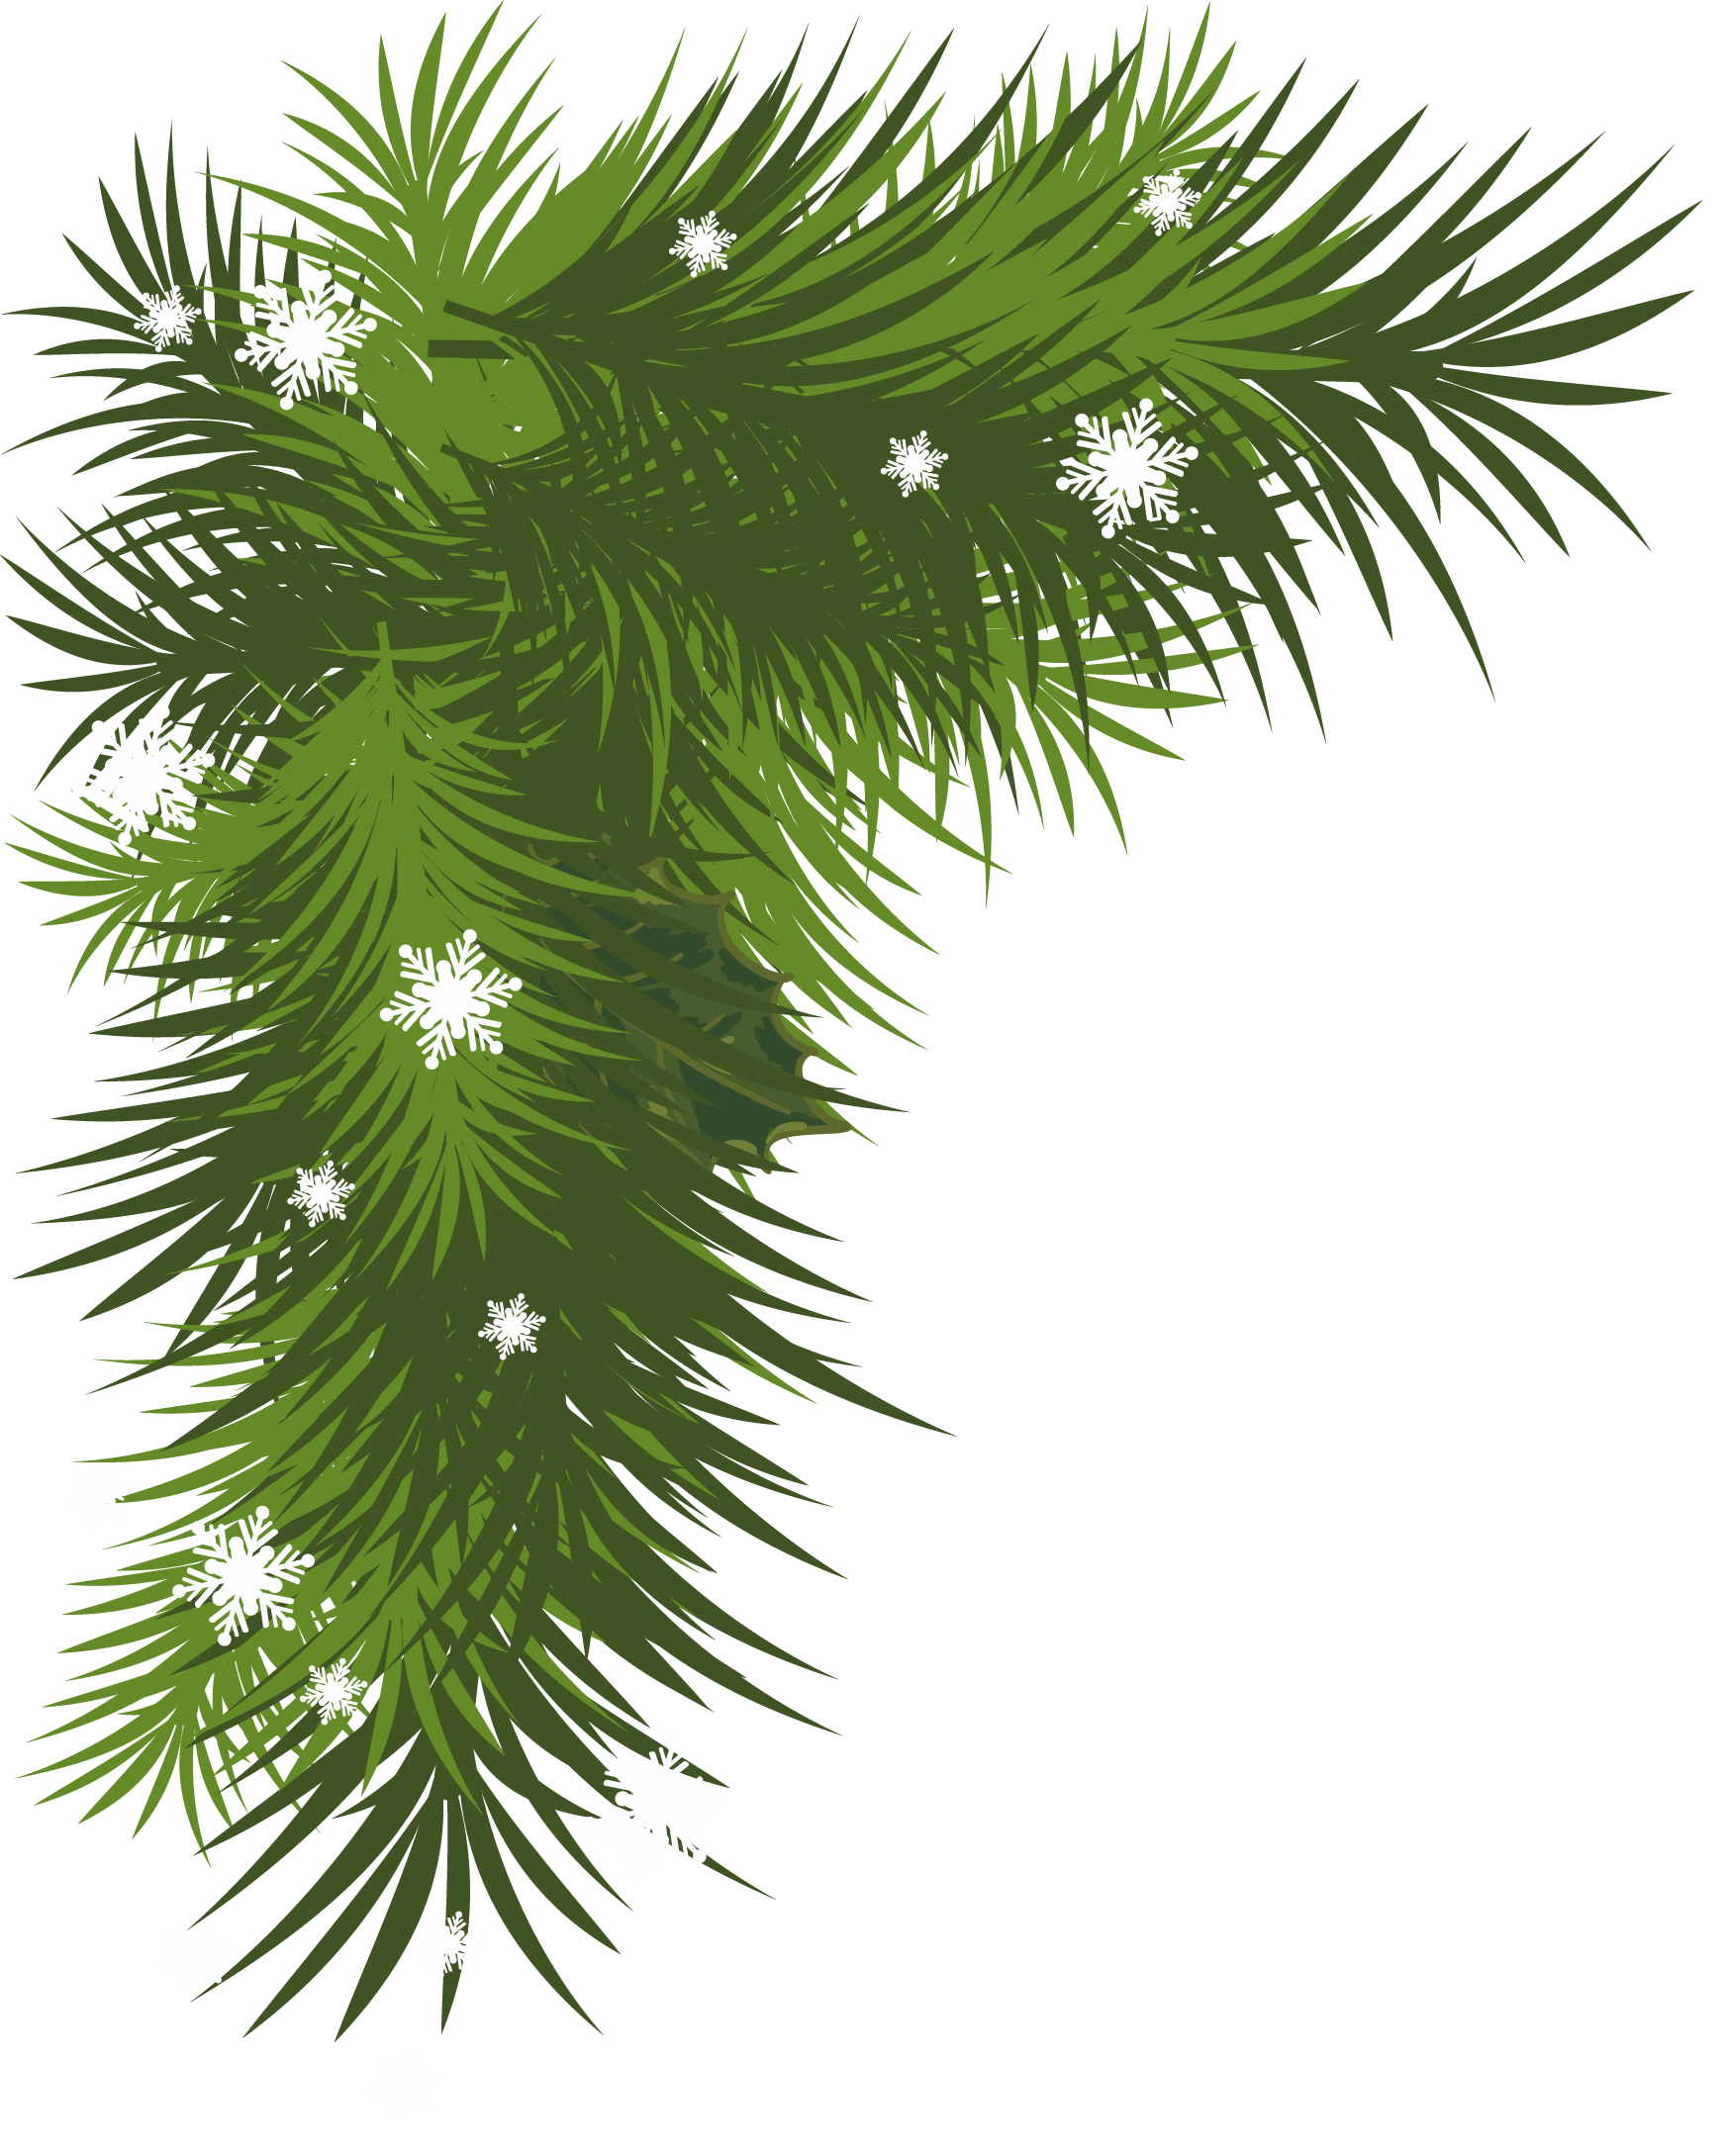 Loblolly pine tree branch clipart picture freeuse library Snowy Pine Bough Clipart picture freeuse library